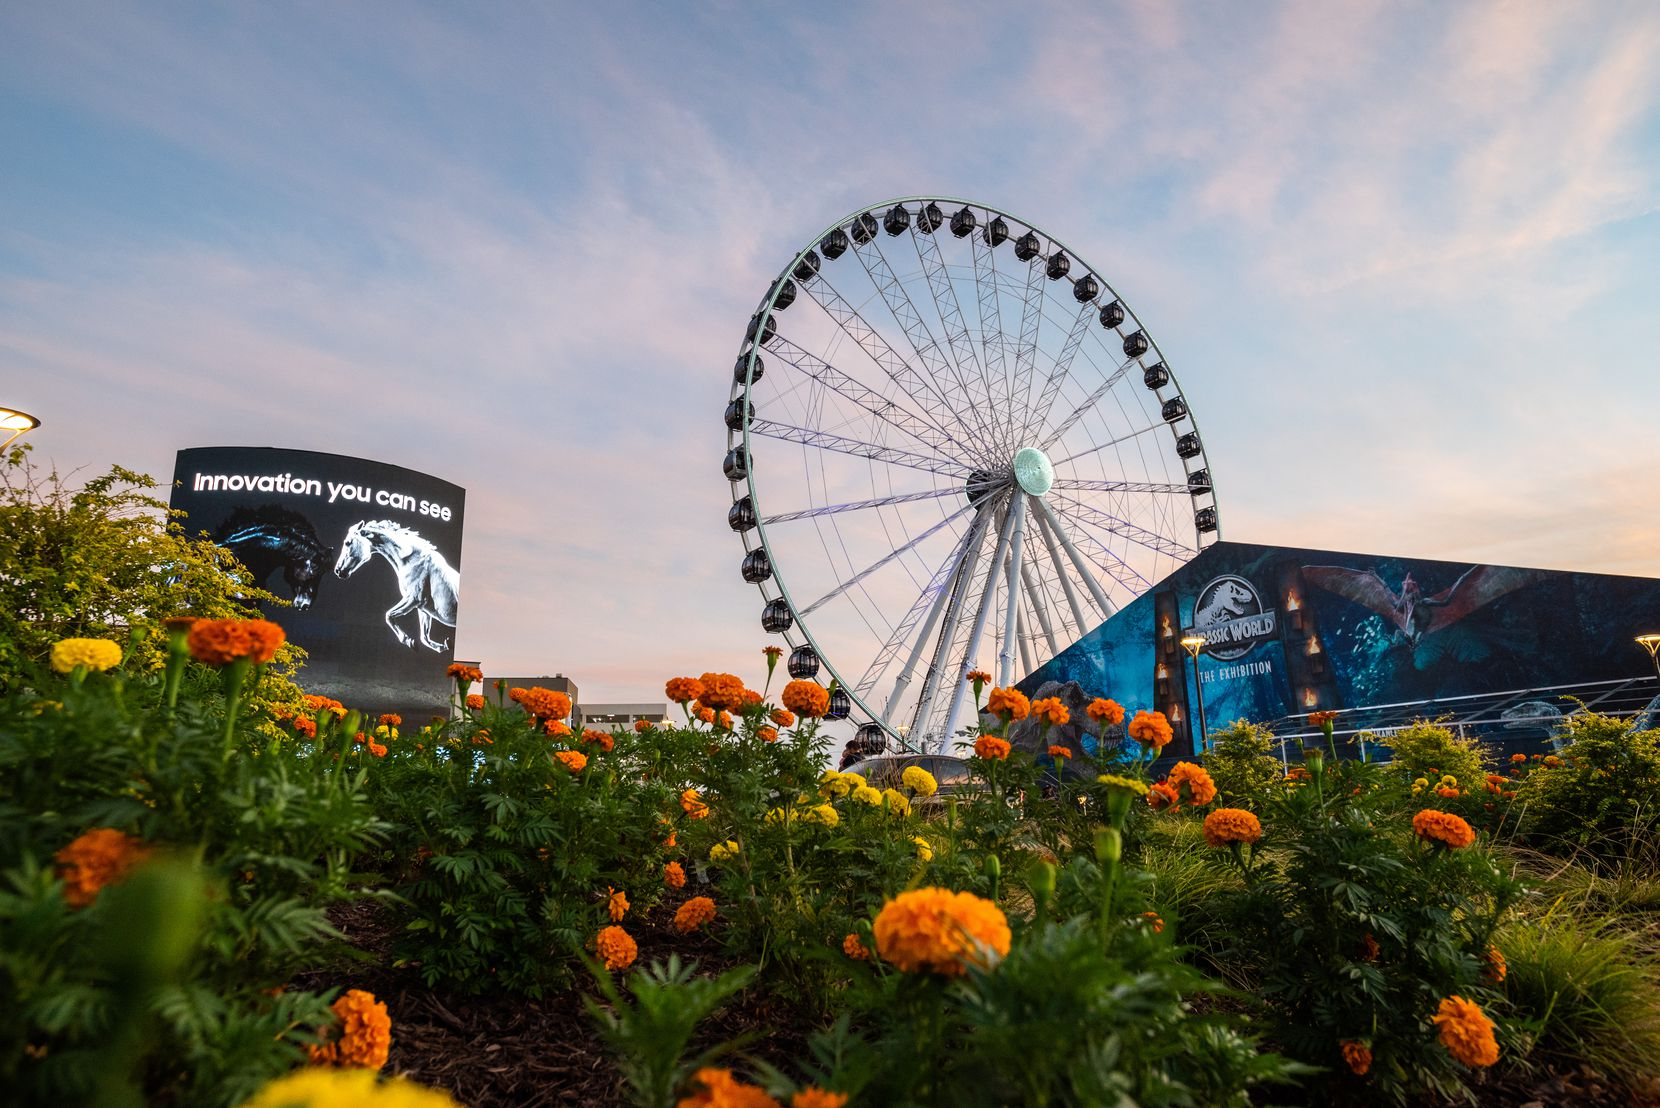 The Grandscape Wheel has 42 gondolas, and eight people can fit in each one. Visitors pay $15.94 for a ride.